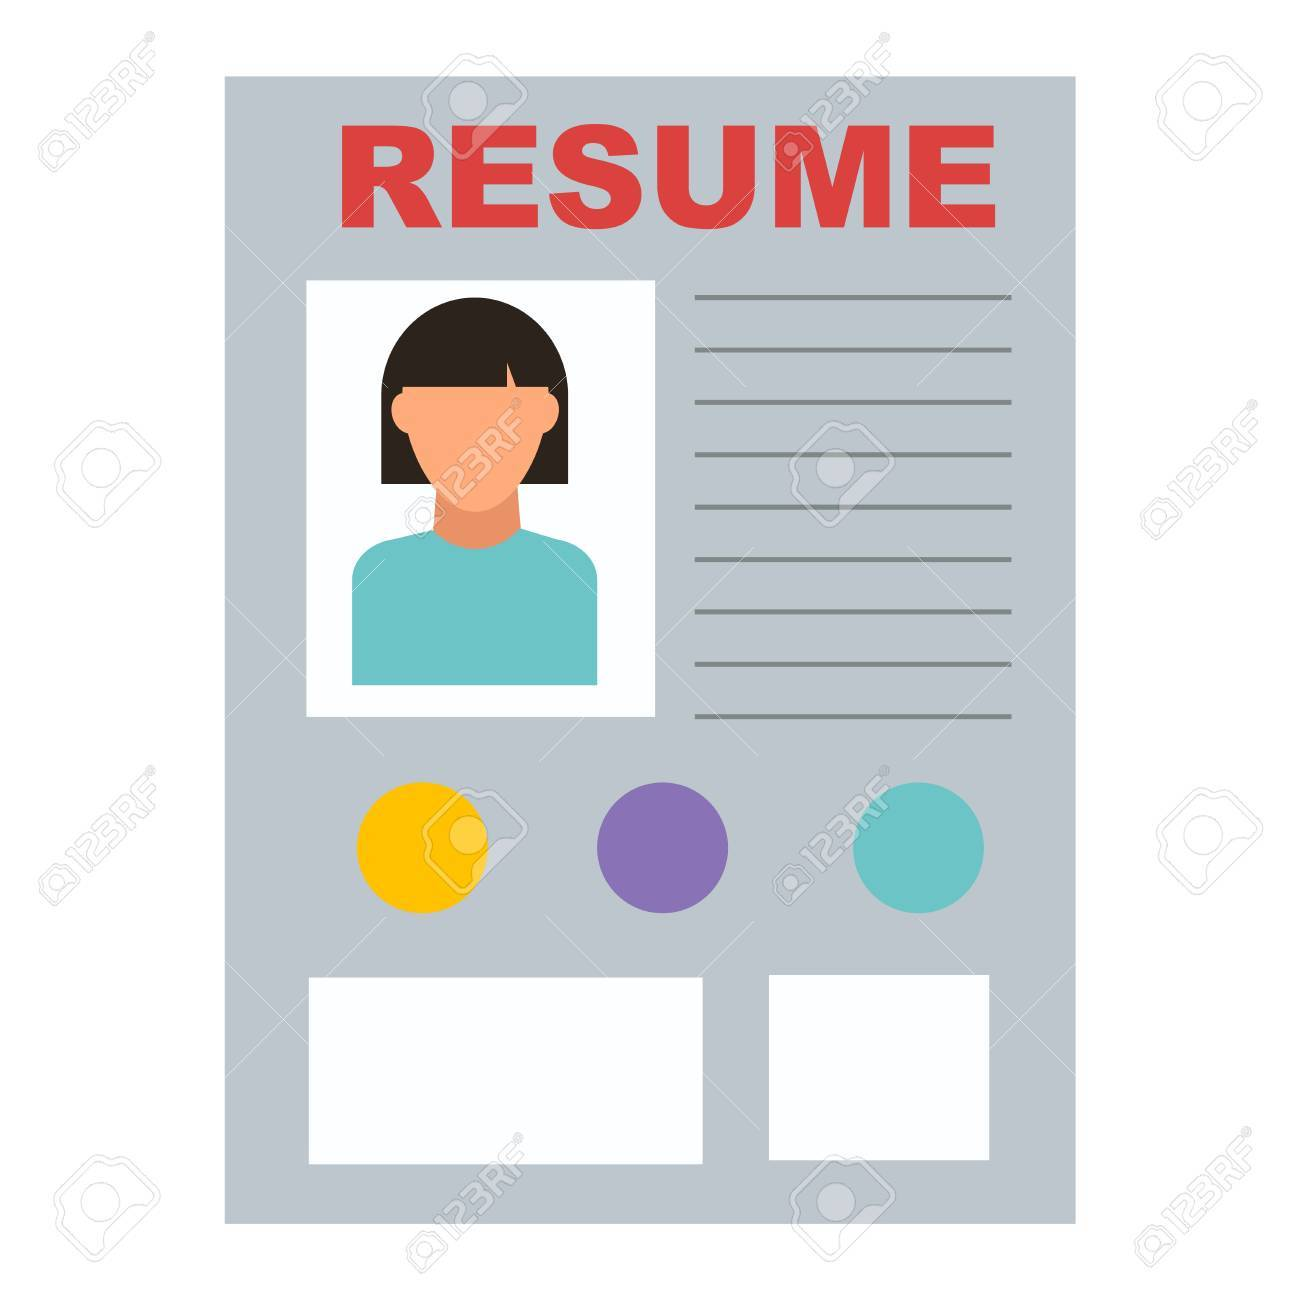 Resume Icon Work Job Office Symbol Document Design Contract